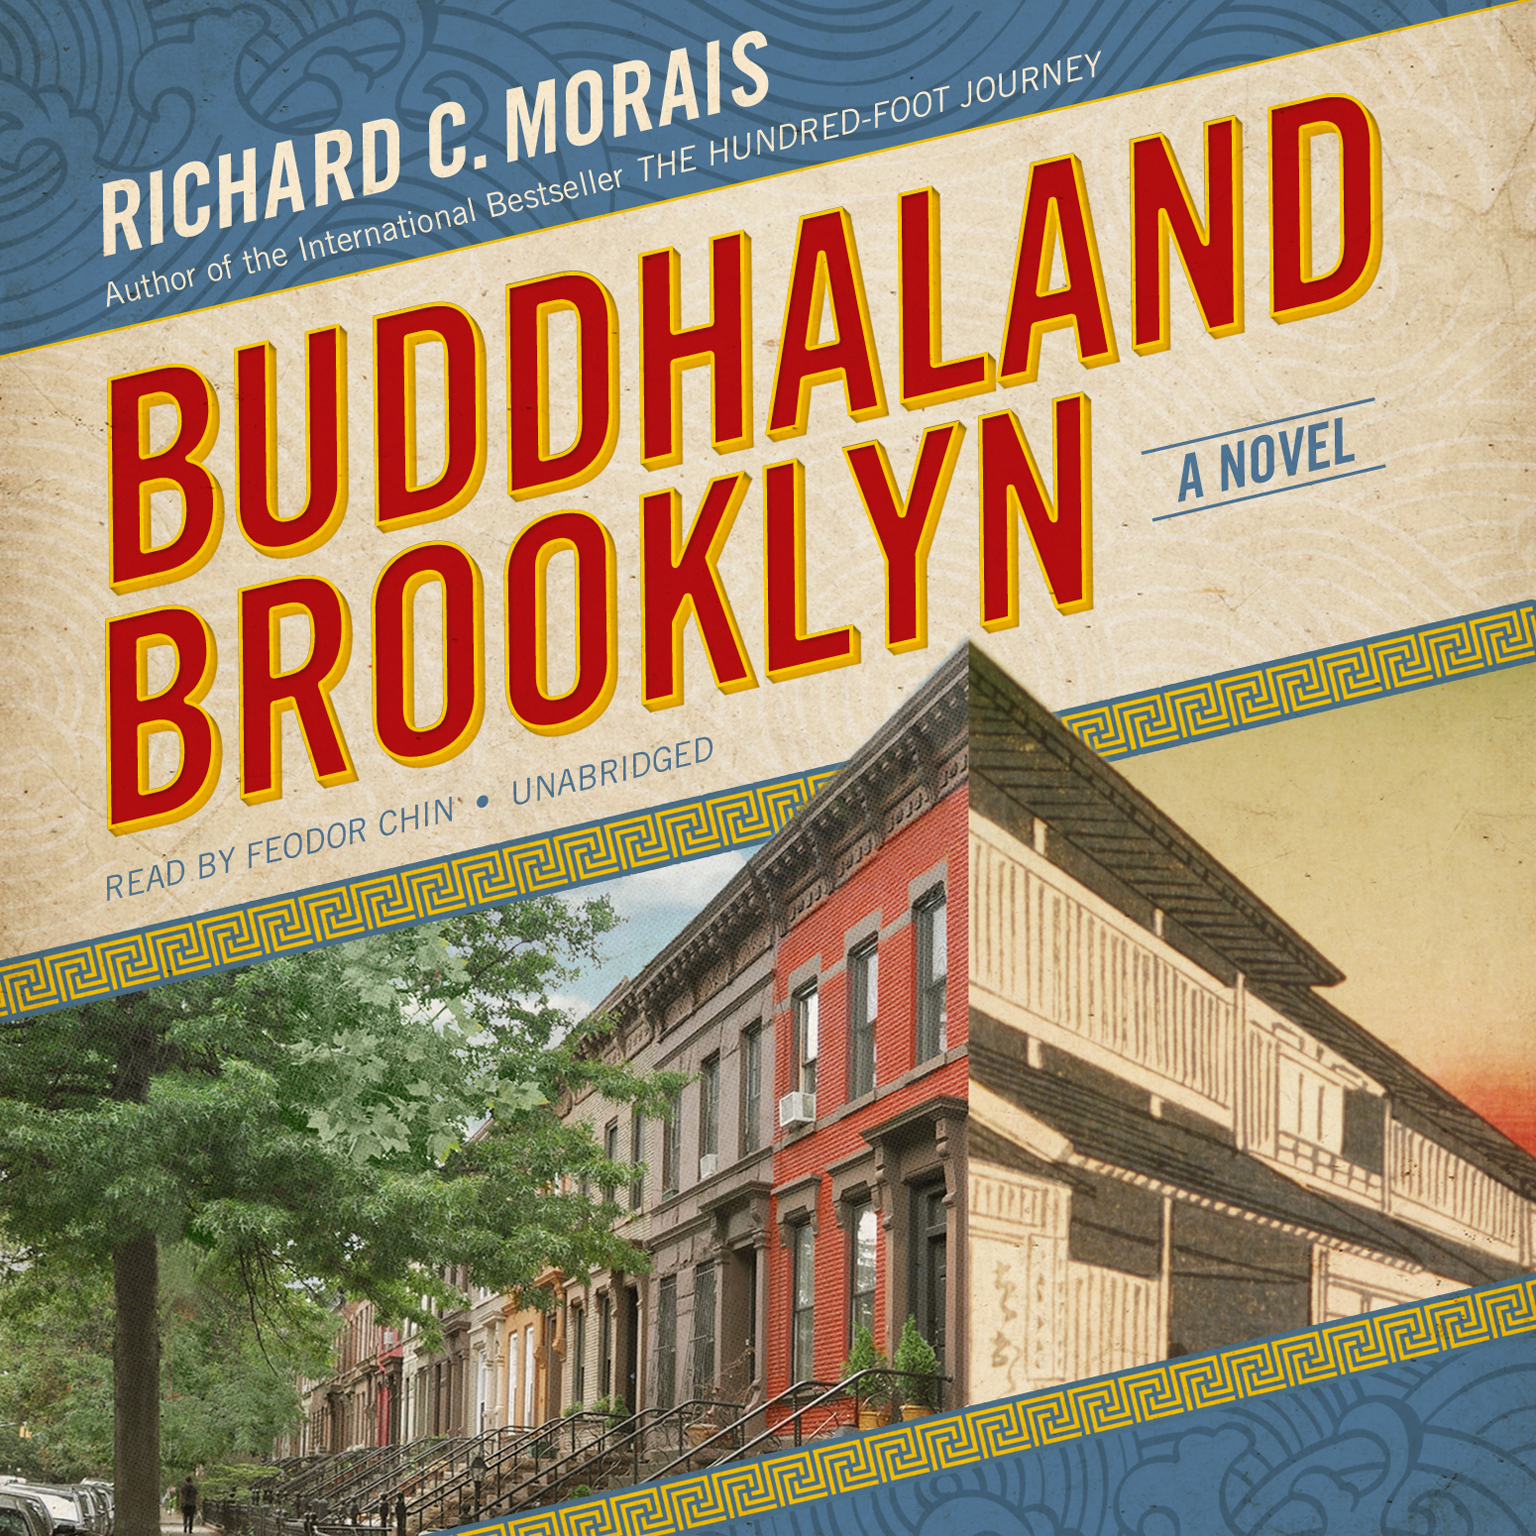 Printable Buddhaland Brooklyn: A Novel Audiobook Cover Art